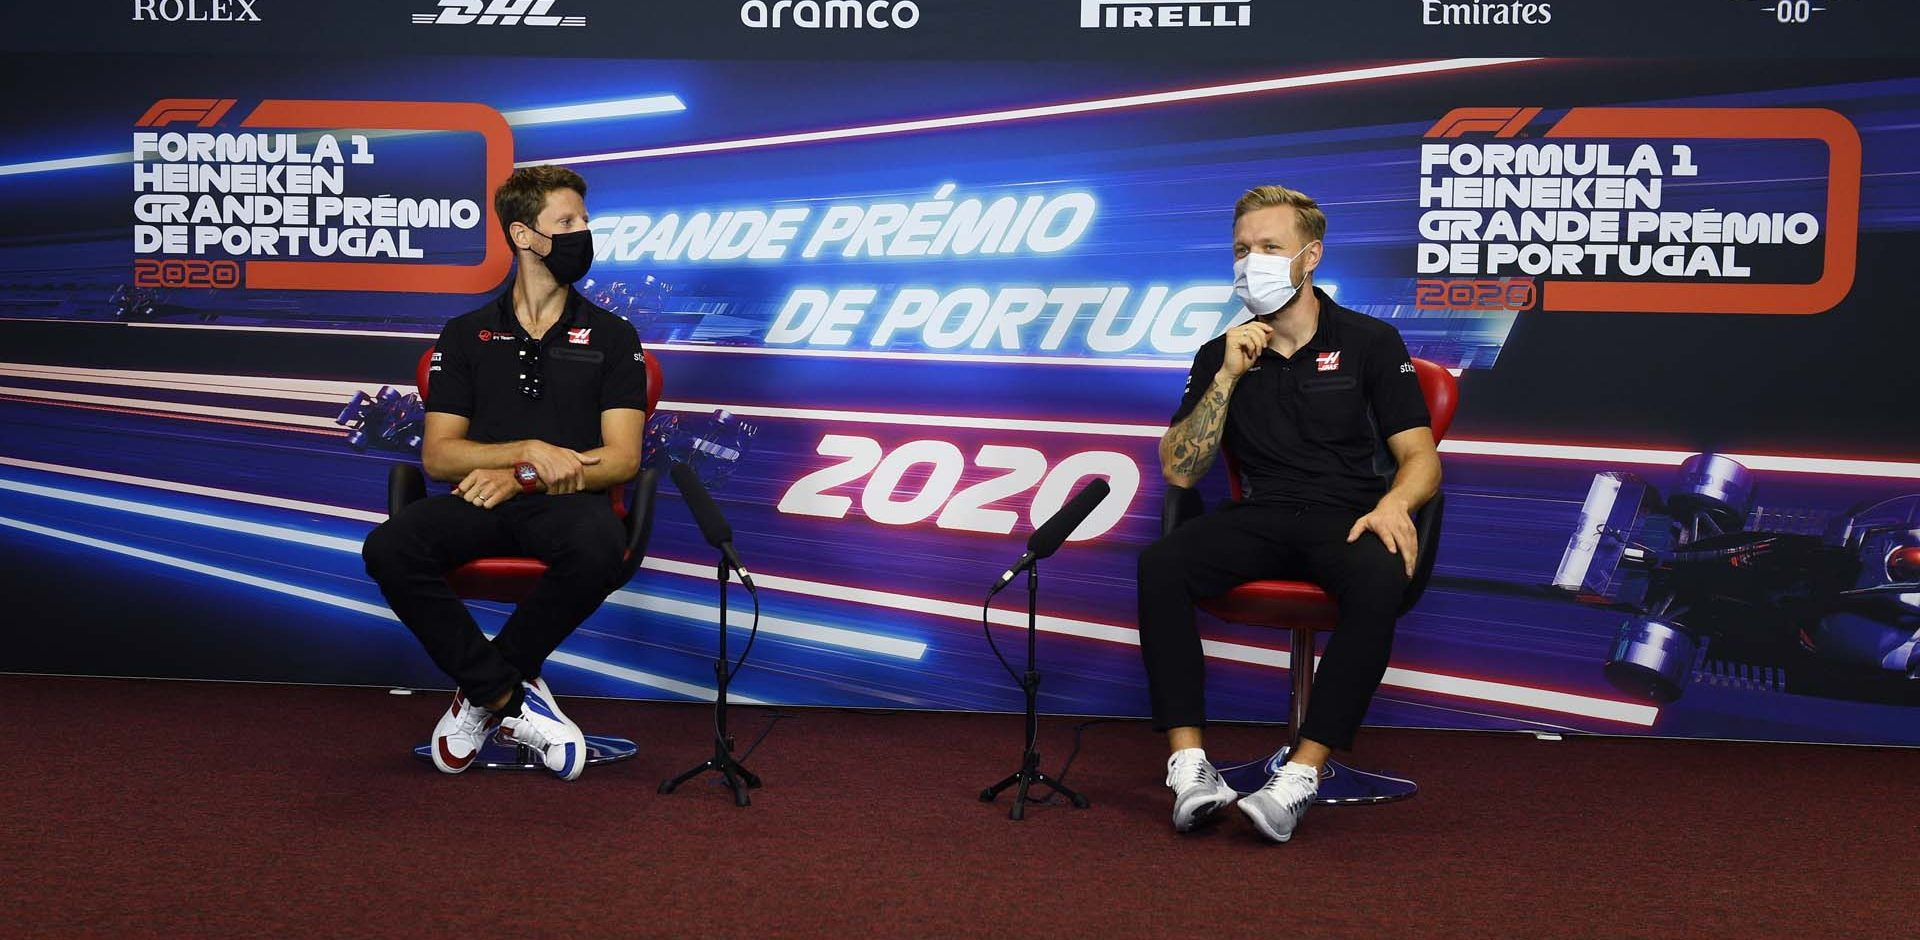 ALGARVE INTERNATIONAL CIRCUIT, PORTUGAL - OCTOBER 22: Romain Grosjean, Haas F1, and Kevin Magnussen, Haas F1, in the press conference during the Portuguese GP at Algarve International Circuit on Thursday October 22, 2020, Portugal. (Copyright Free for Editorial Use Only. Credit: FIA Pool / LAT Images)